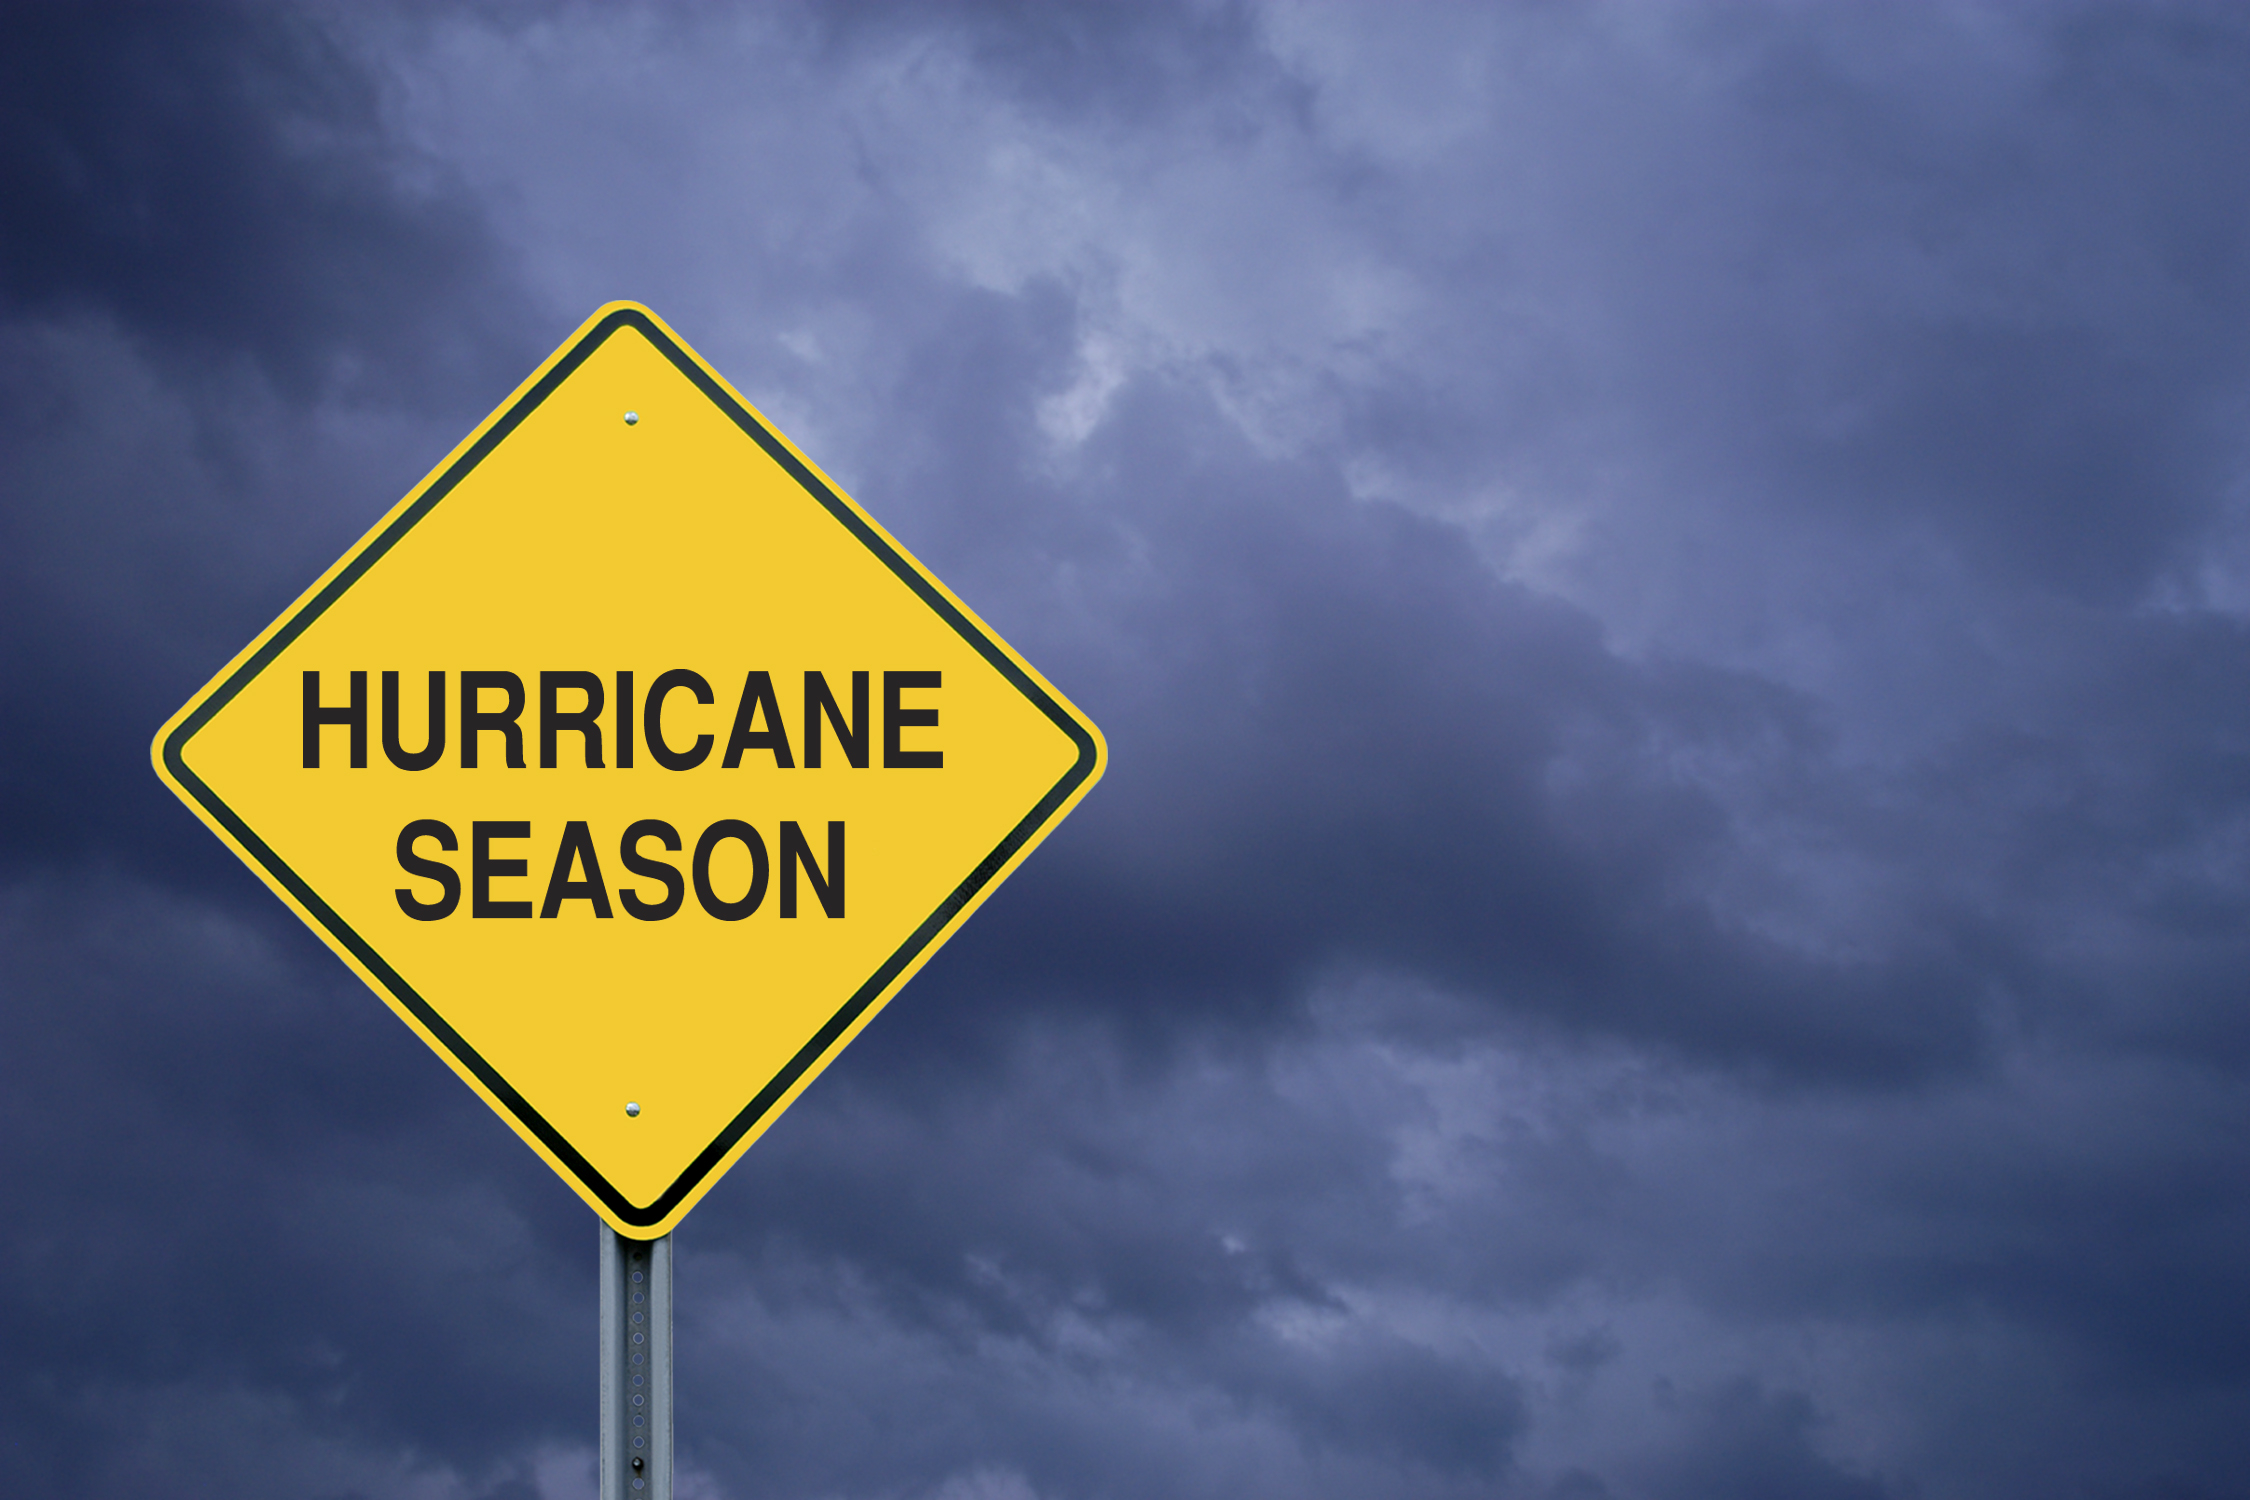 1.hurricane season